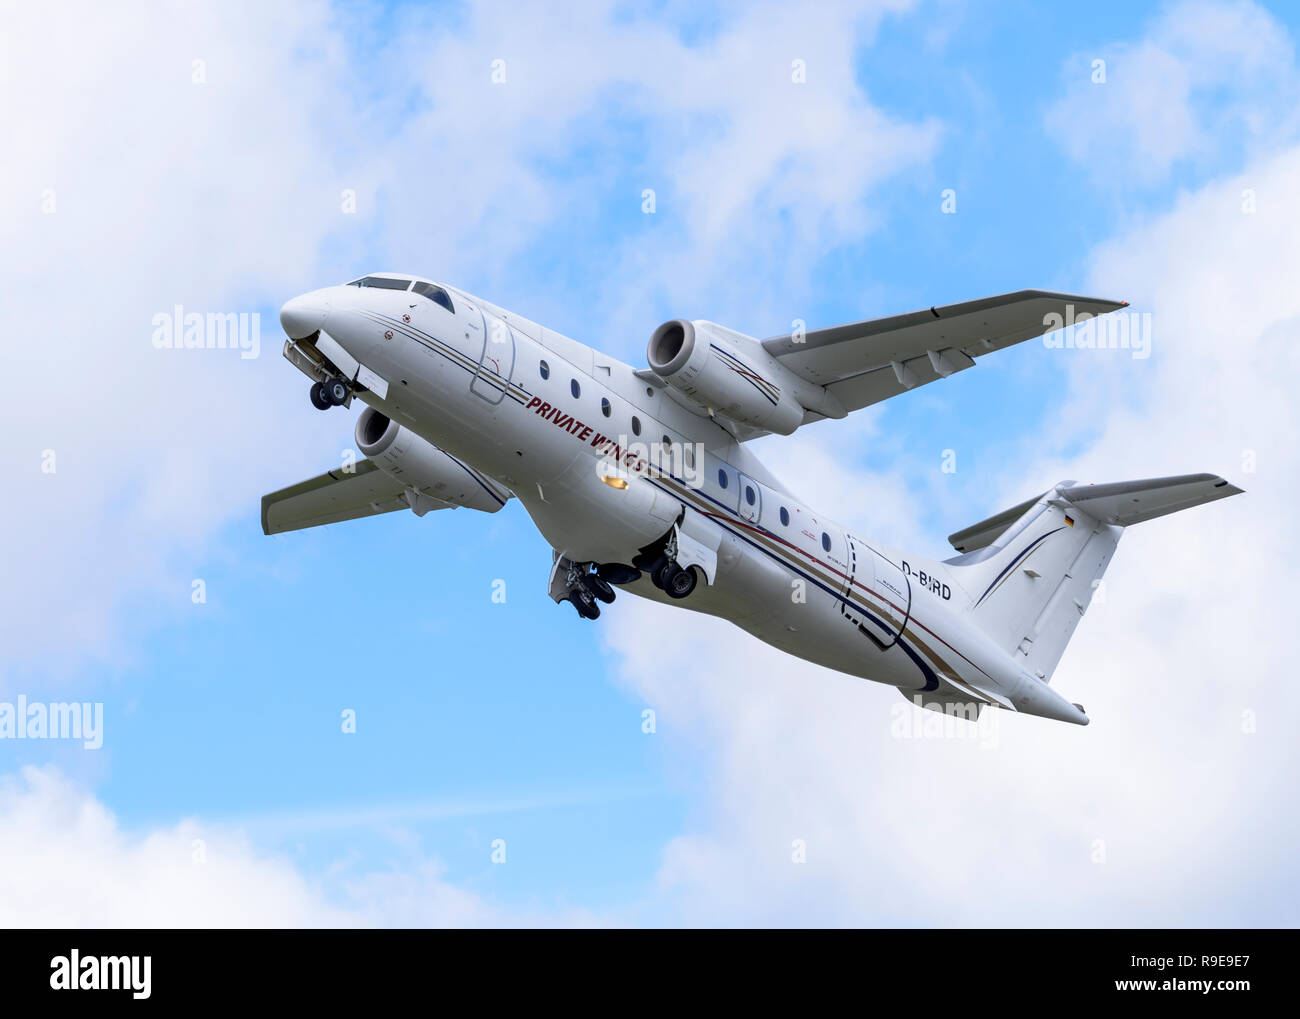 Fairchild-Dornier 328JET commuter airliner, in Private Wings Flugcharter livery, retracts its wheels after take-off. - Stock Image